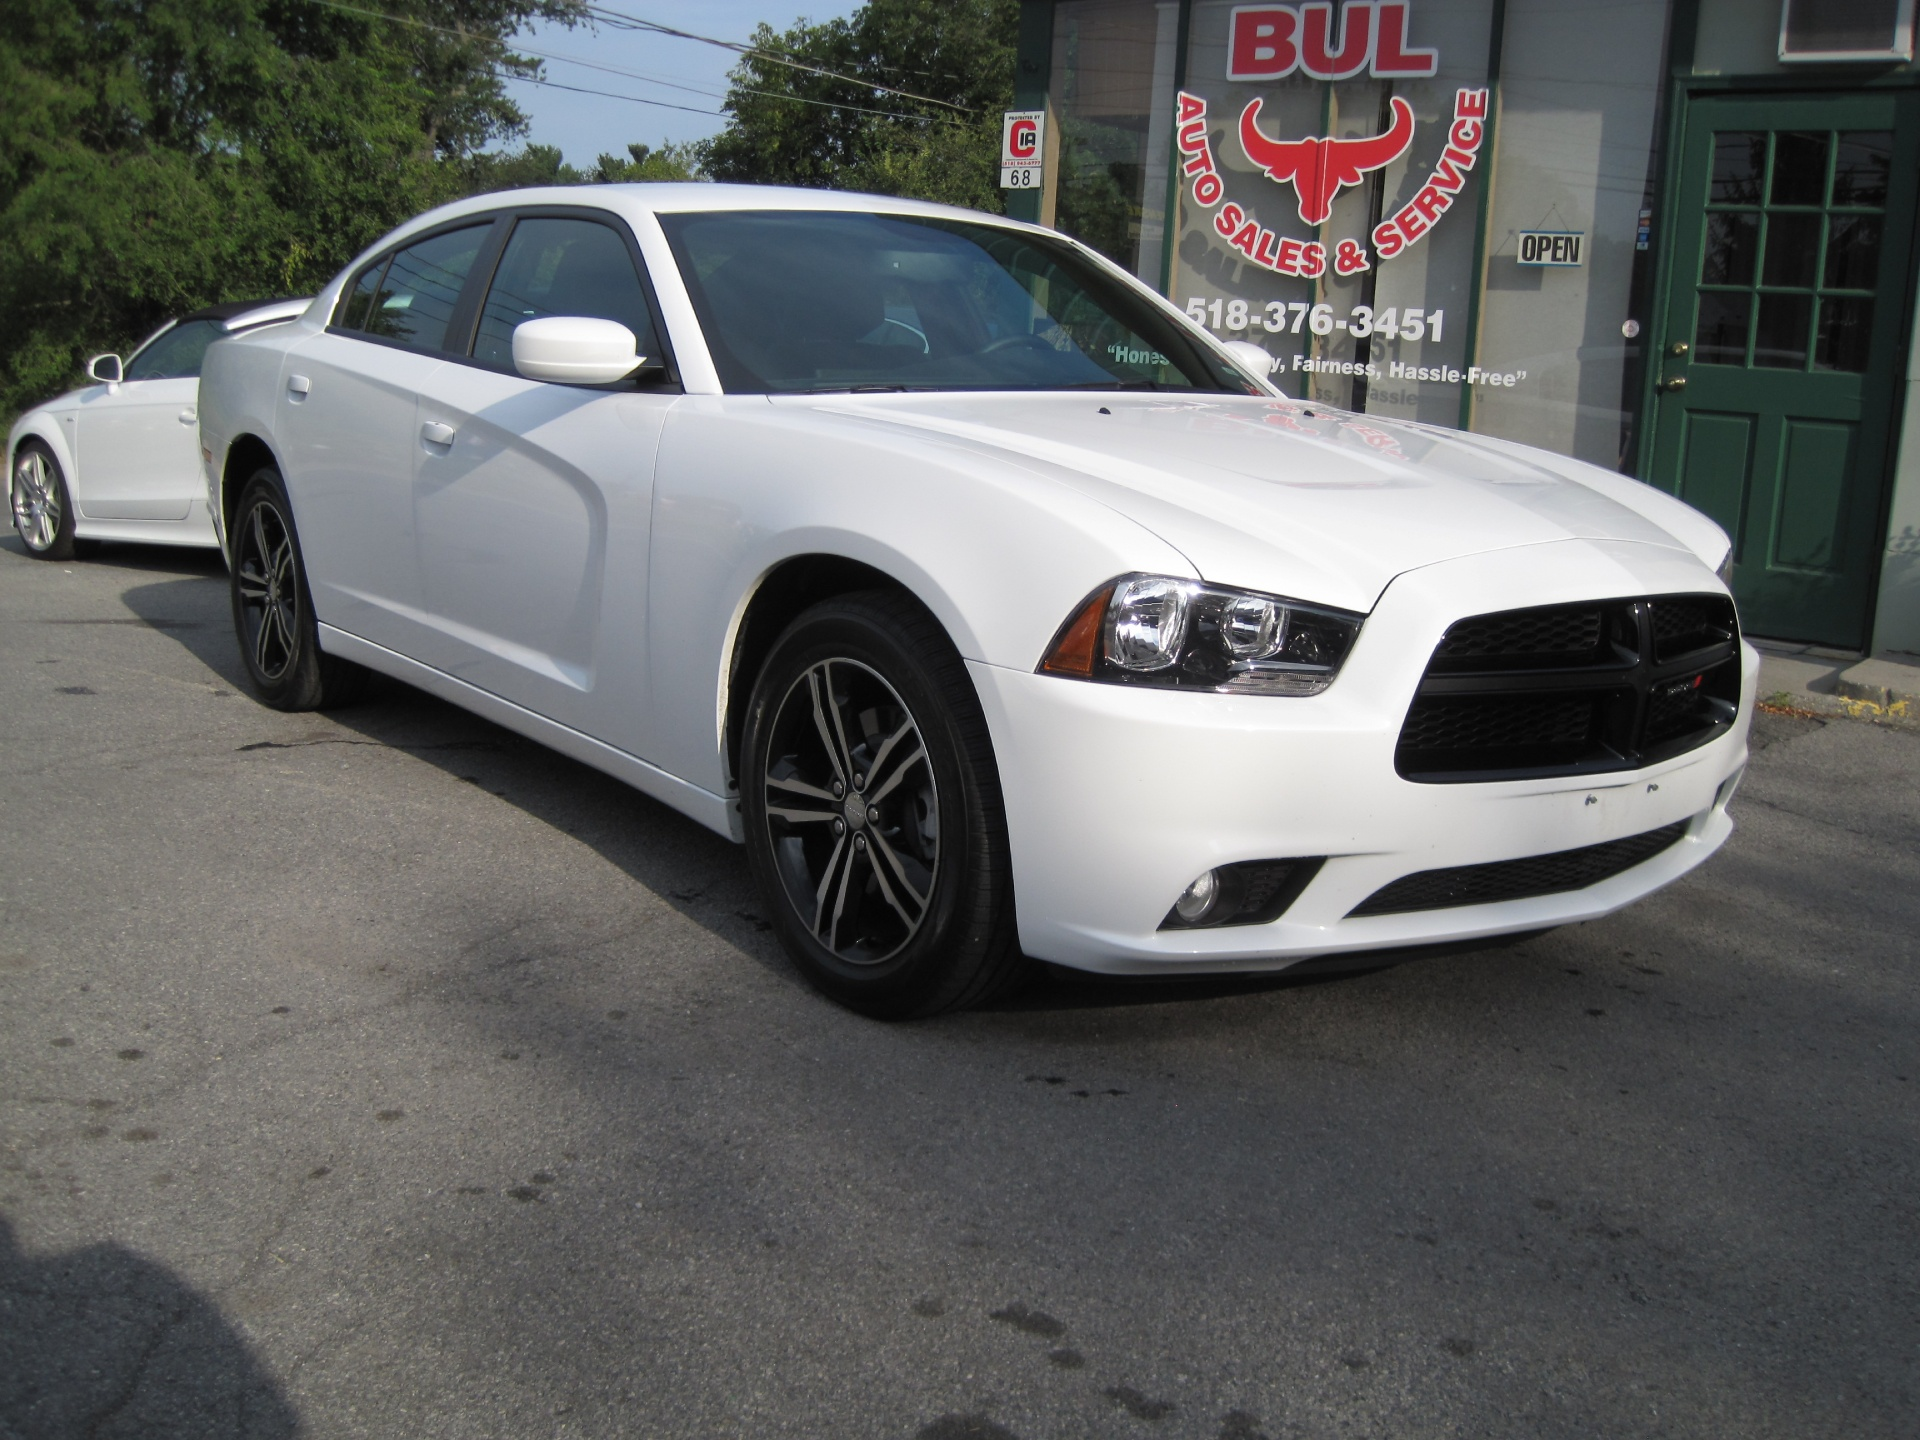 2014 dodge charger sxt plus like new low miles loaded navigation leather heated seats back up. Black Bedroom Furniture Sets. Home Design Ideas